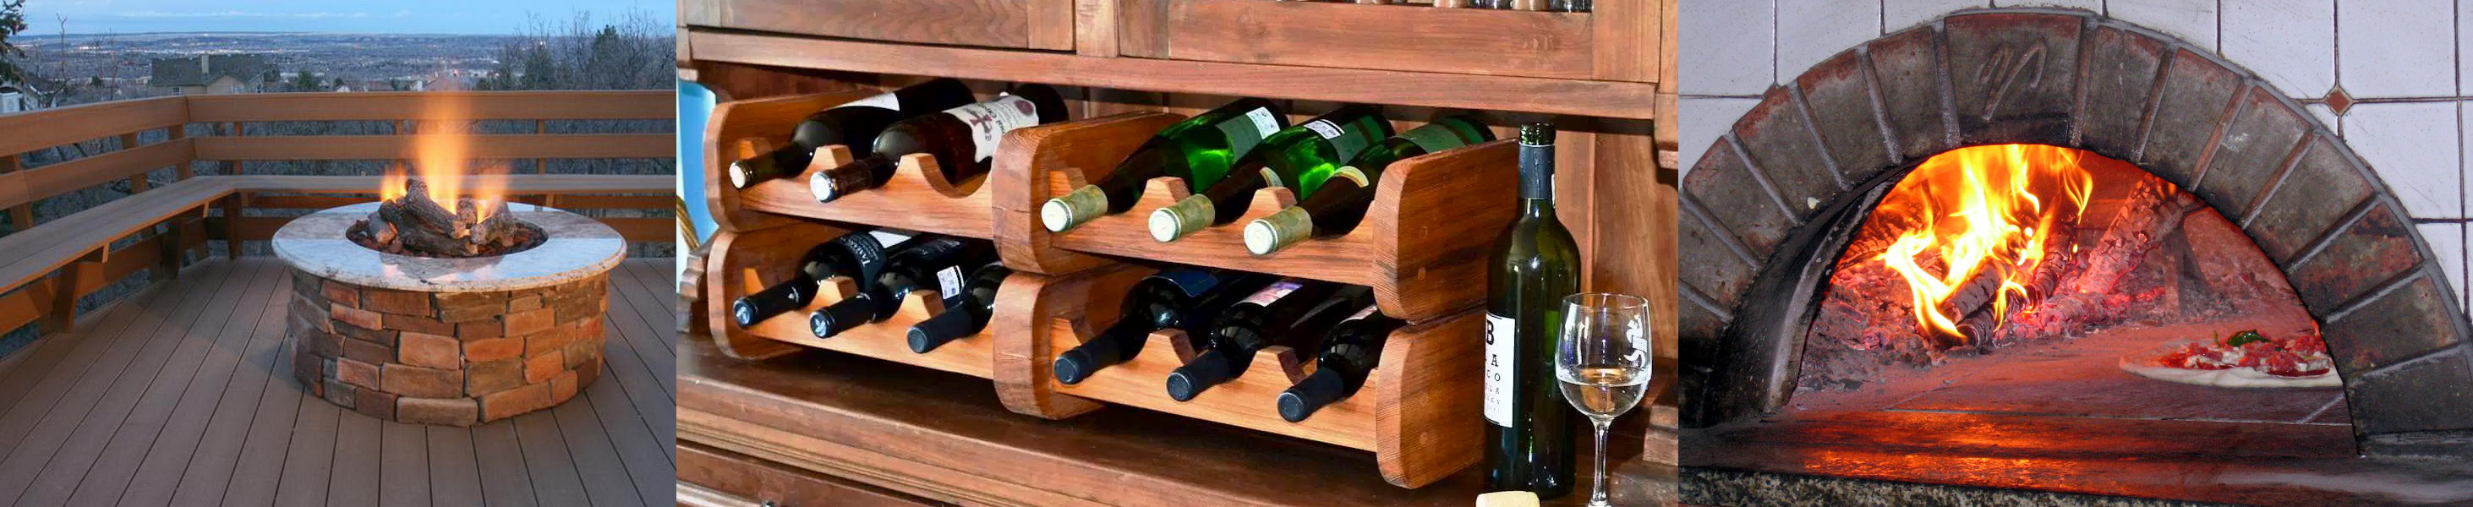 Fire Pits and Wine Rack